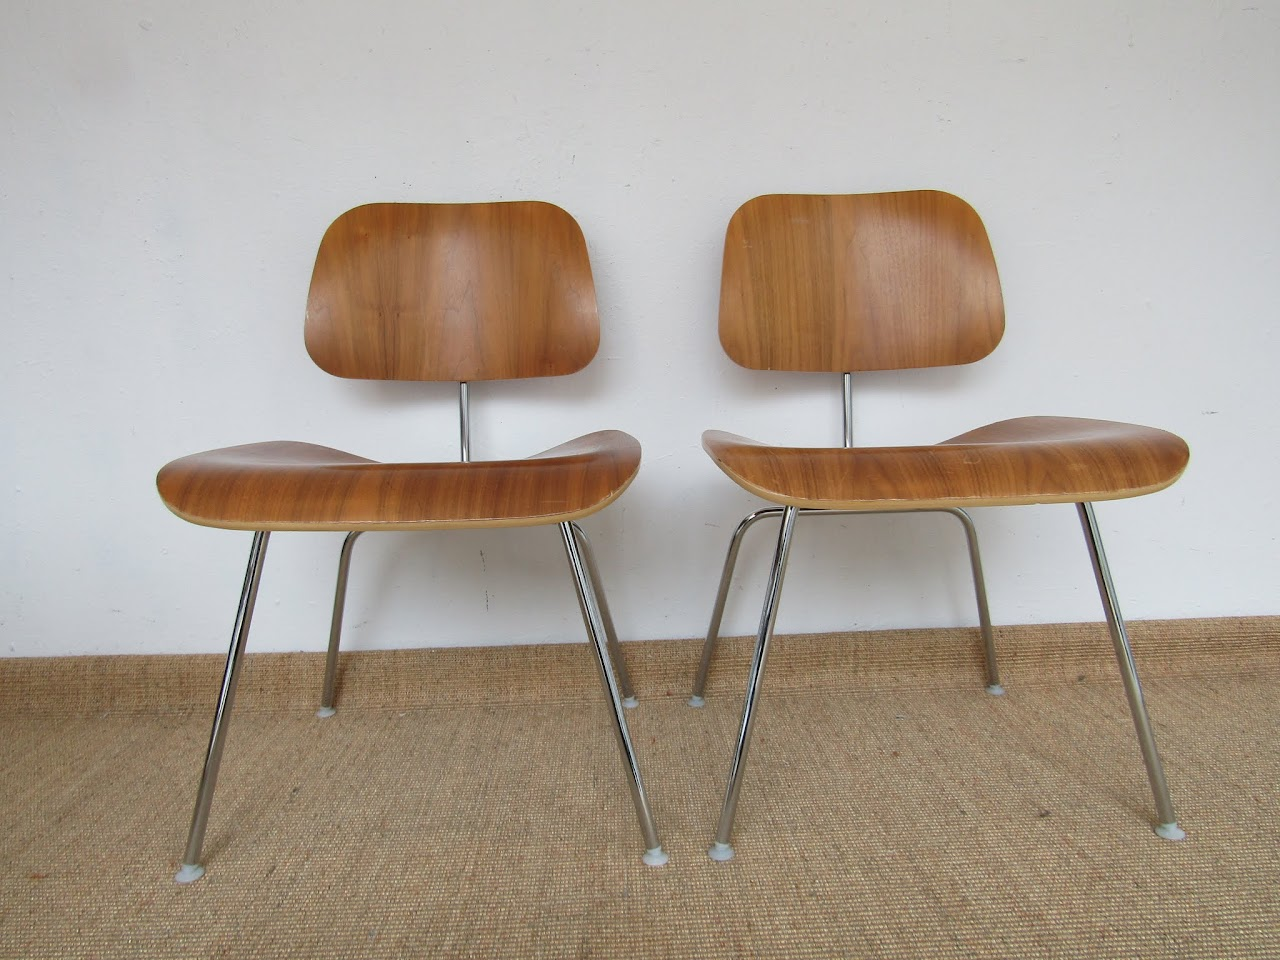 Eames Molded Plywood Chair Pair (7)